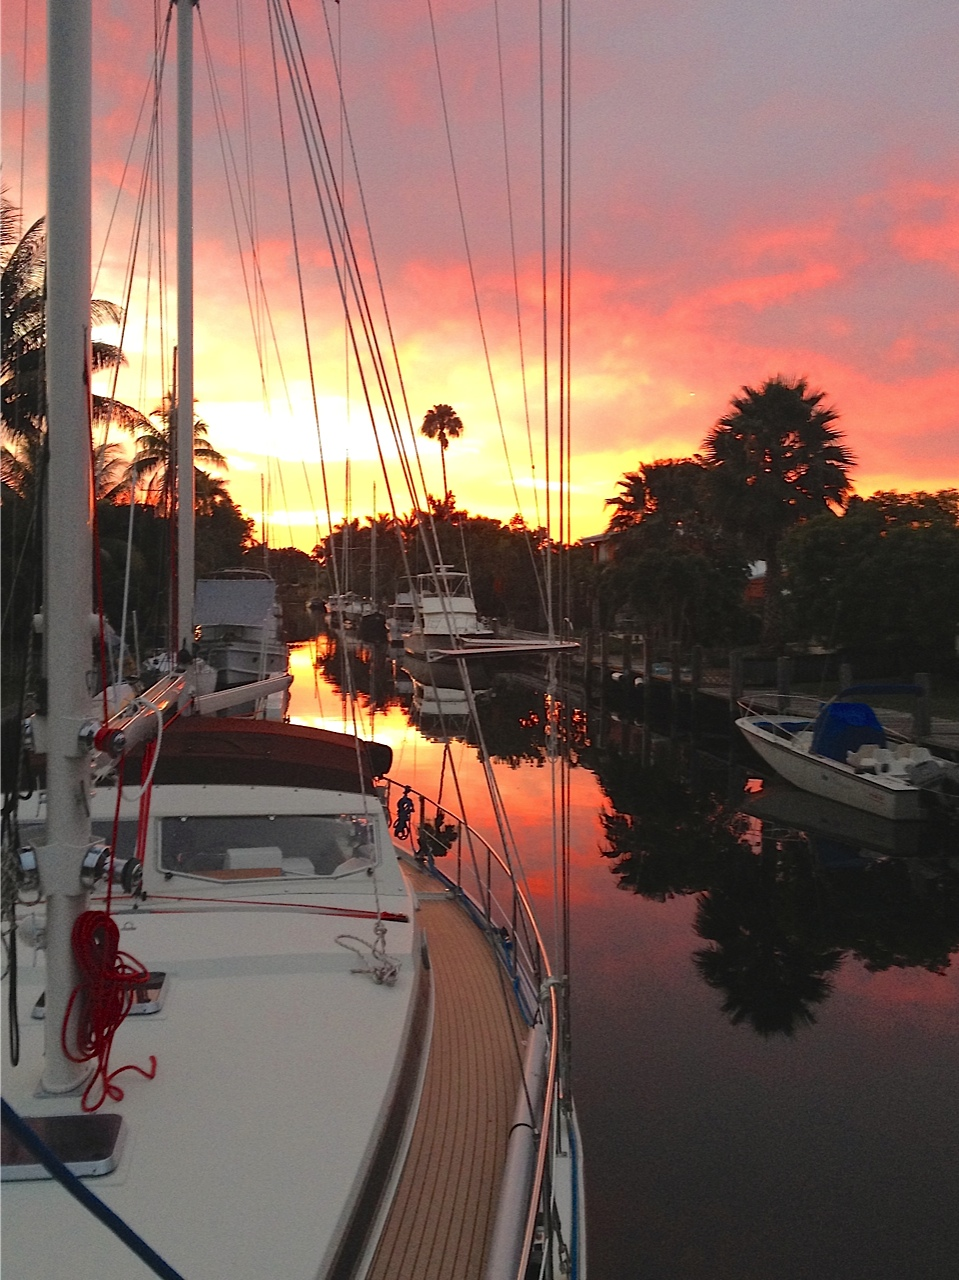 Fort Lauderdale is filled with canals like the canal between Orange Isle street and Tangelo Isle street. 31 March 2014, 7:45 PM.